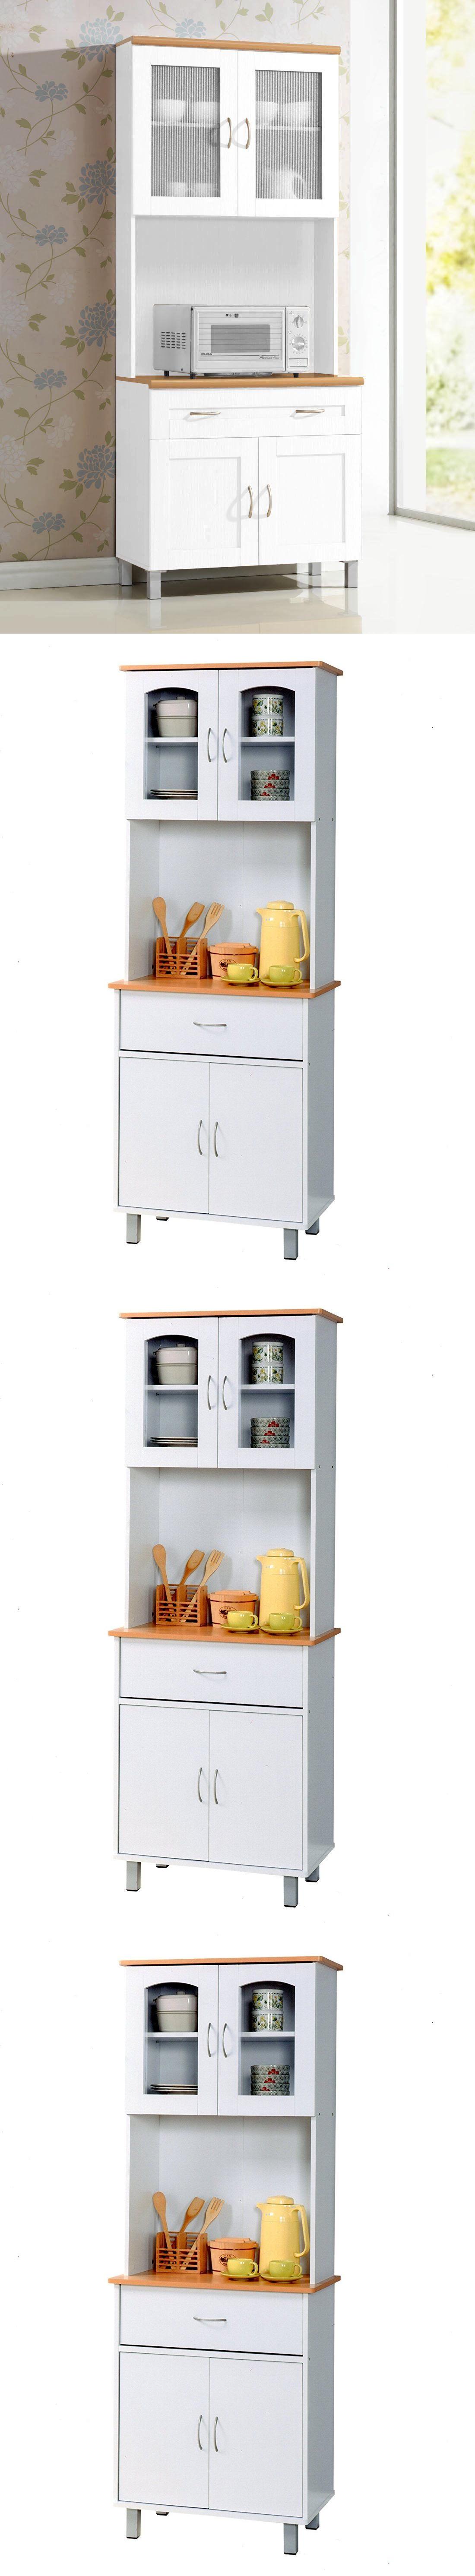 size island storage full target rolling stand andrea kitchen with cabinet pics wooden cheap ideas table movable free uk ikea islands wheels coffee tall drawer cart standing base industrial of seating on shelf microwave white portable square bar decoration breakfast remarkable mobile small black